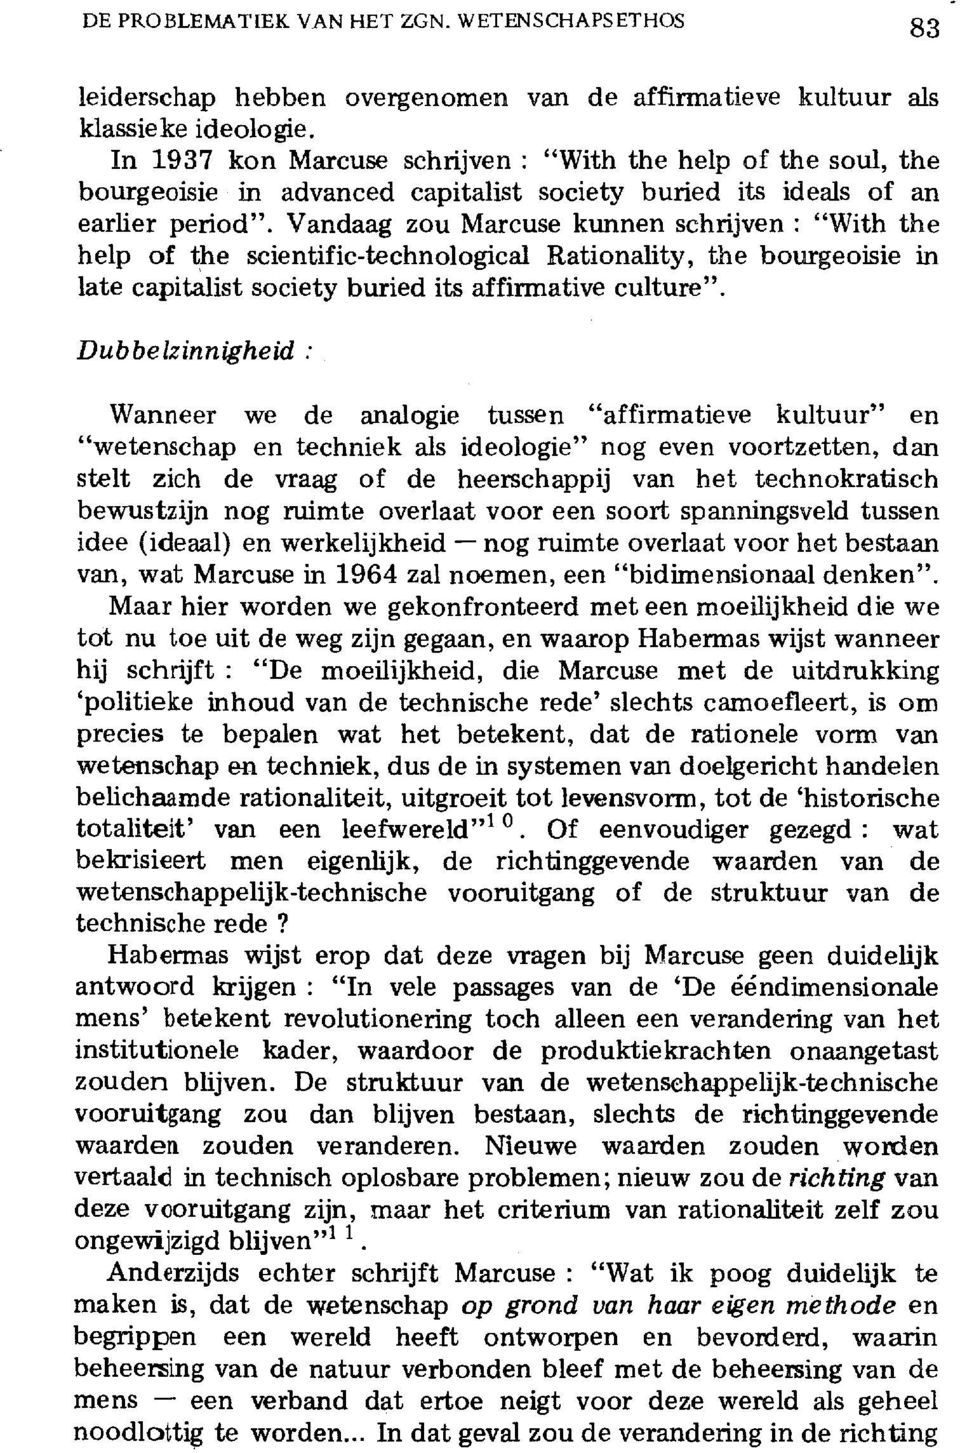 "Vandaag zou Marcuse kunnen schrijven : ""With the help of the scientific-technological Rationality, the bourgeoisie in late capitalist society buried its affirmative culture""."